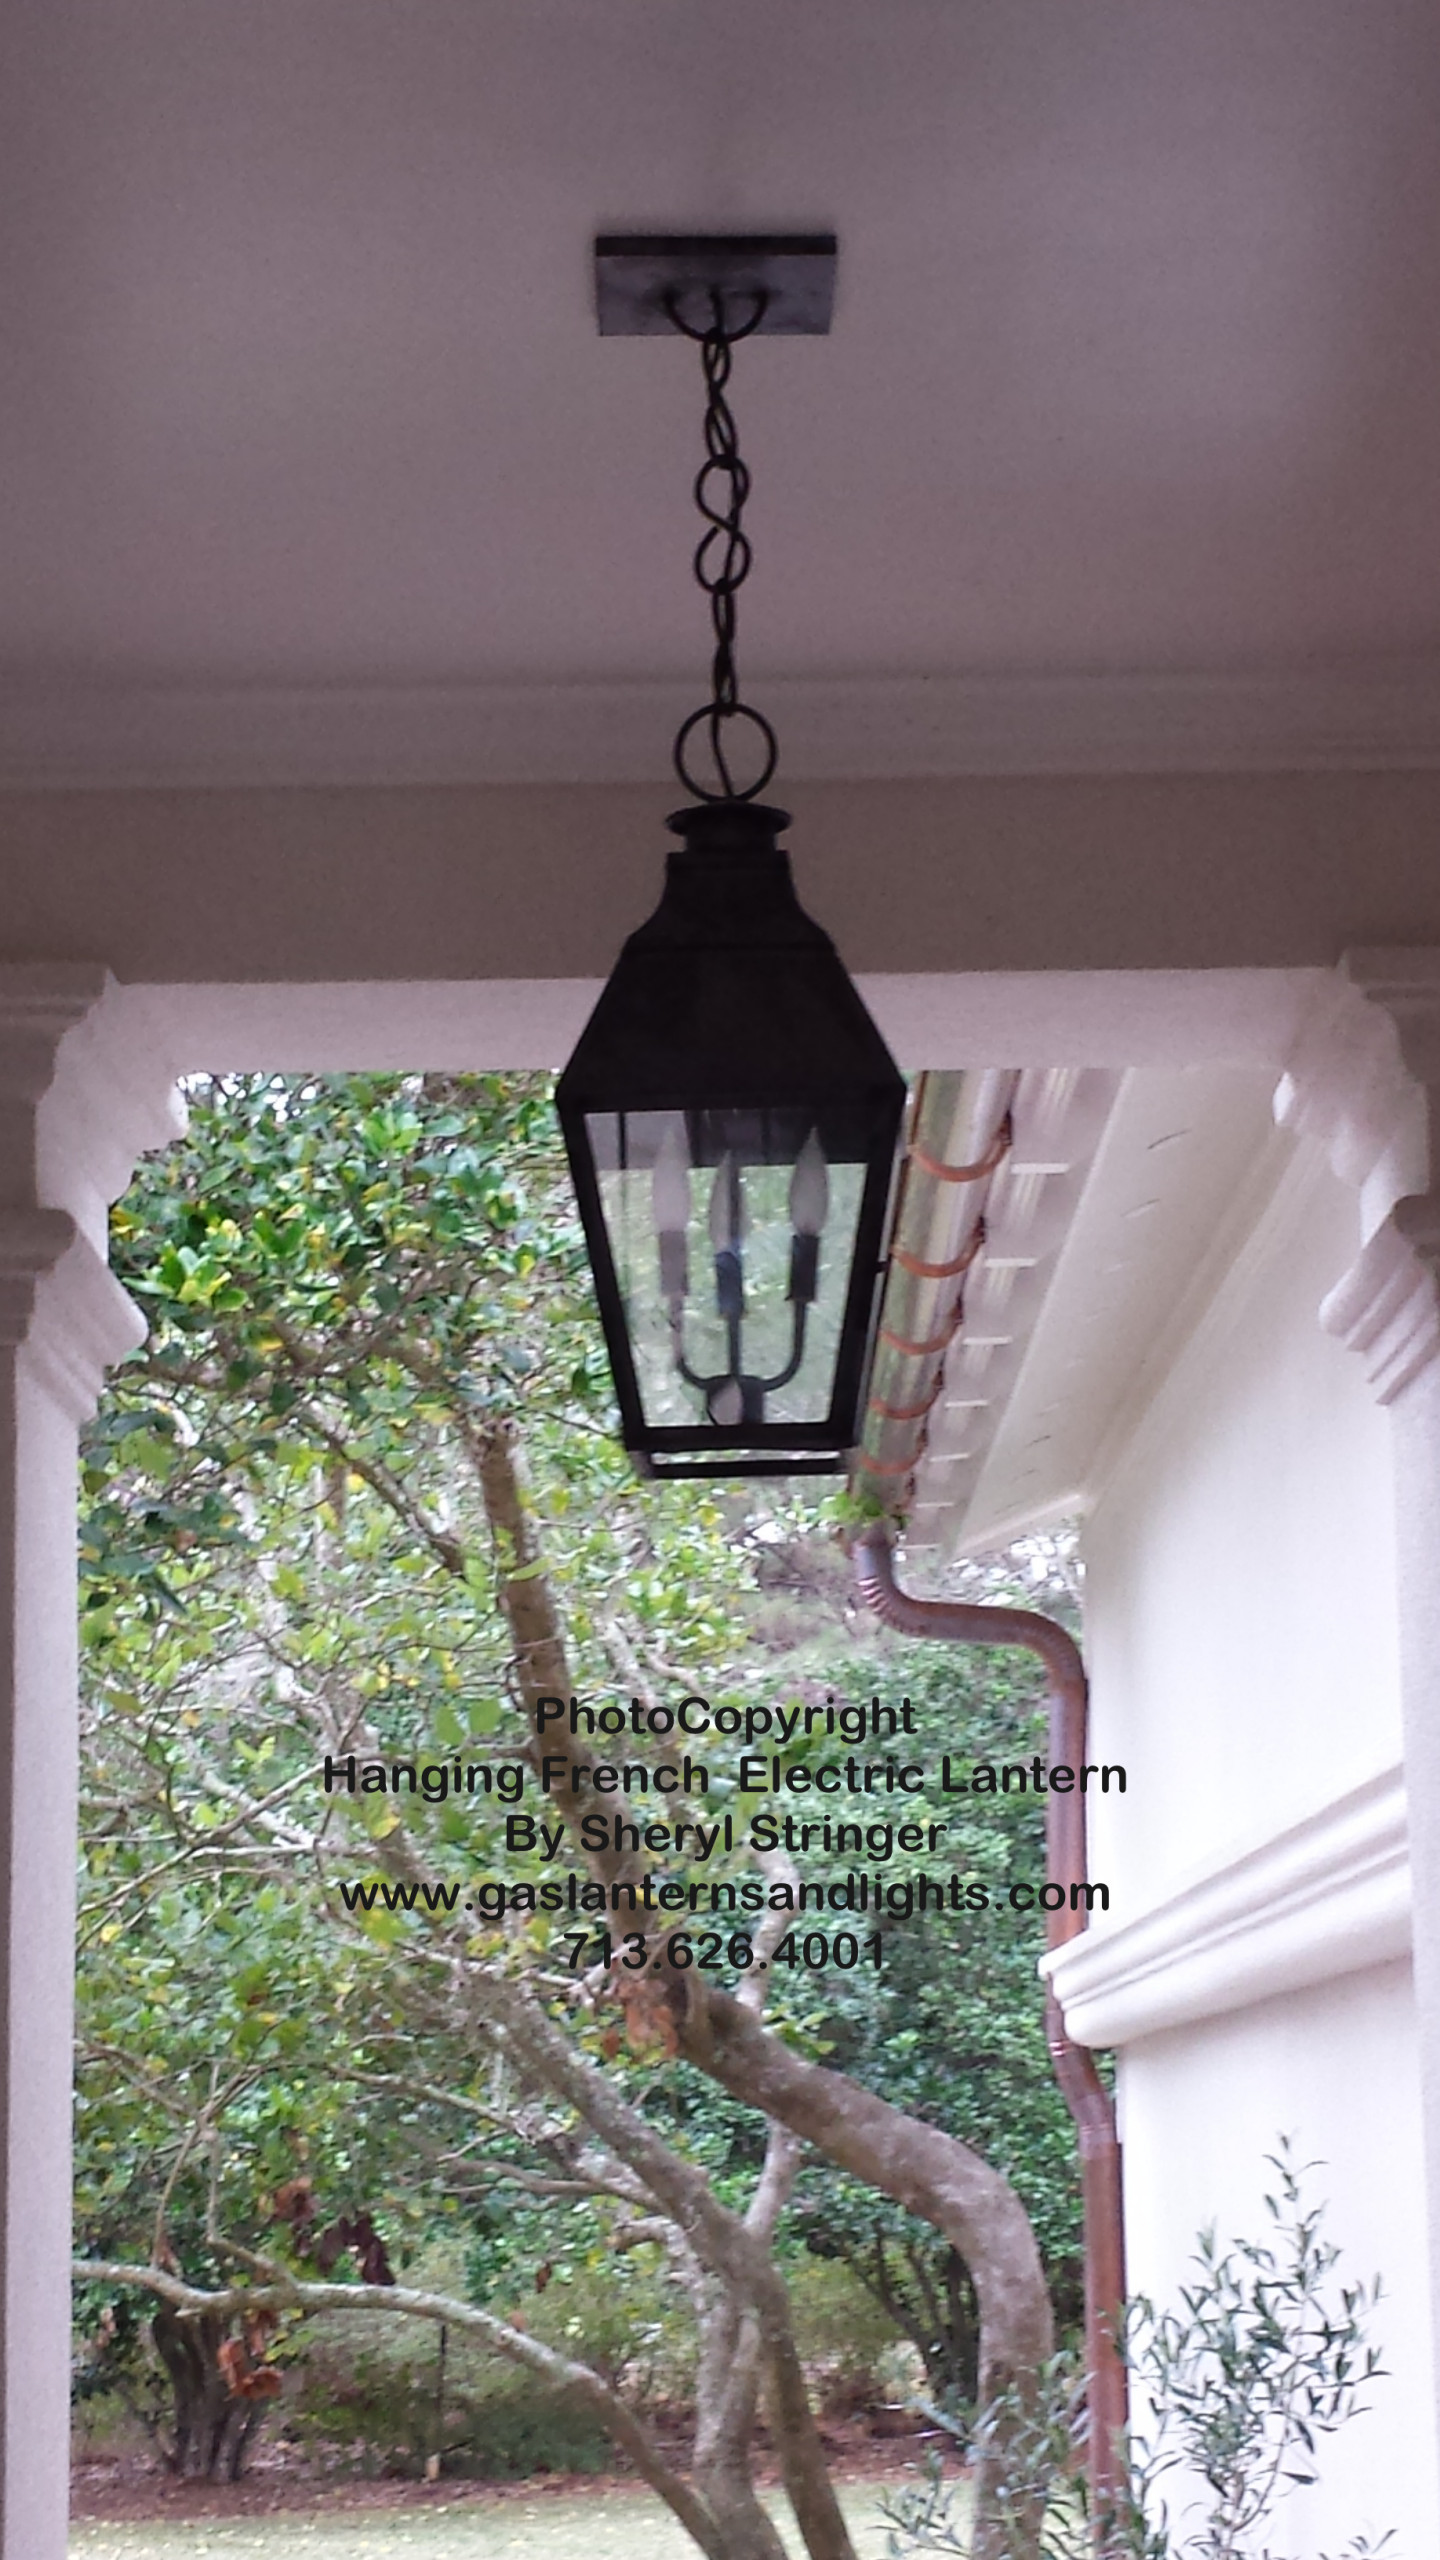 Sheryl's Electric French Style Lantern with Solid Top